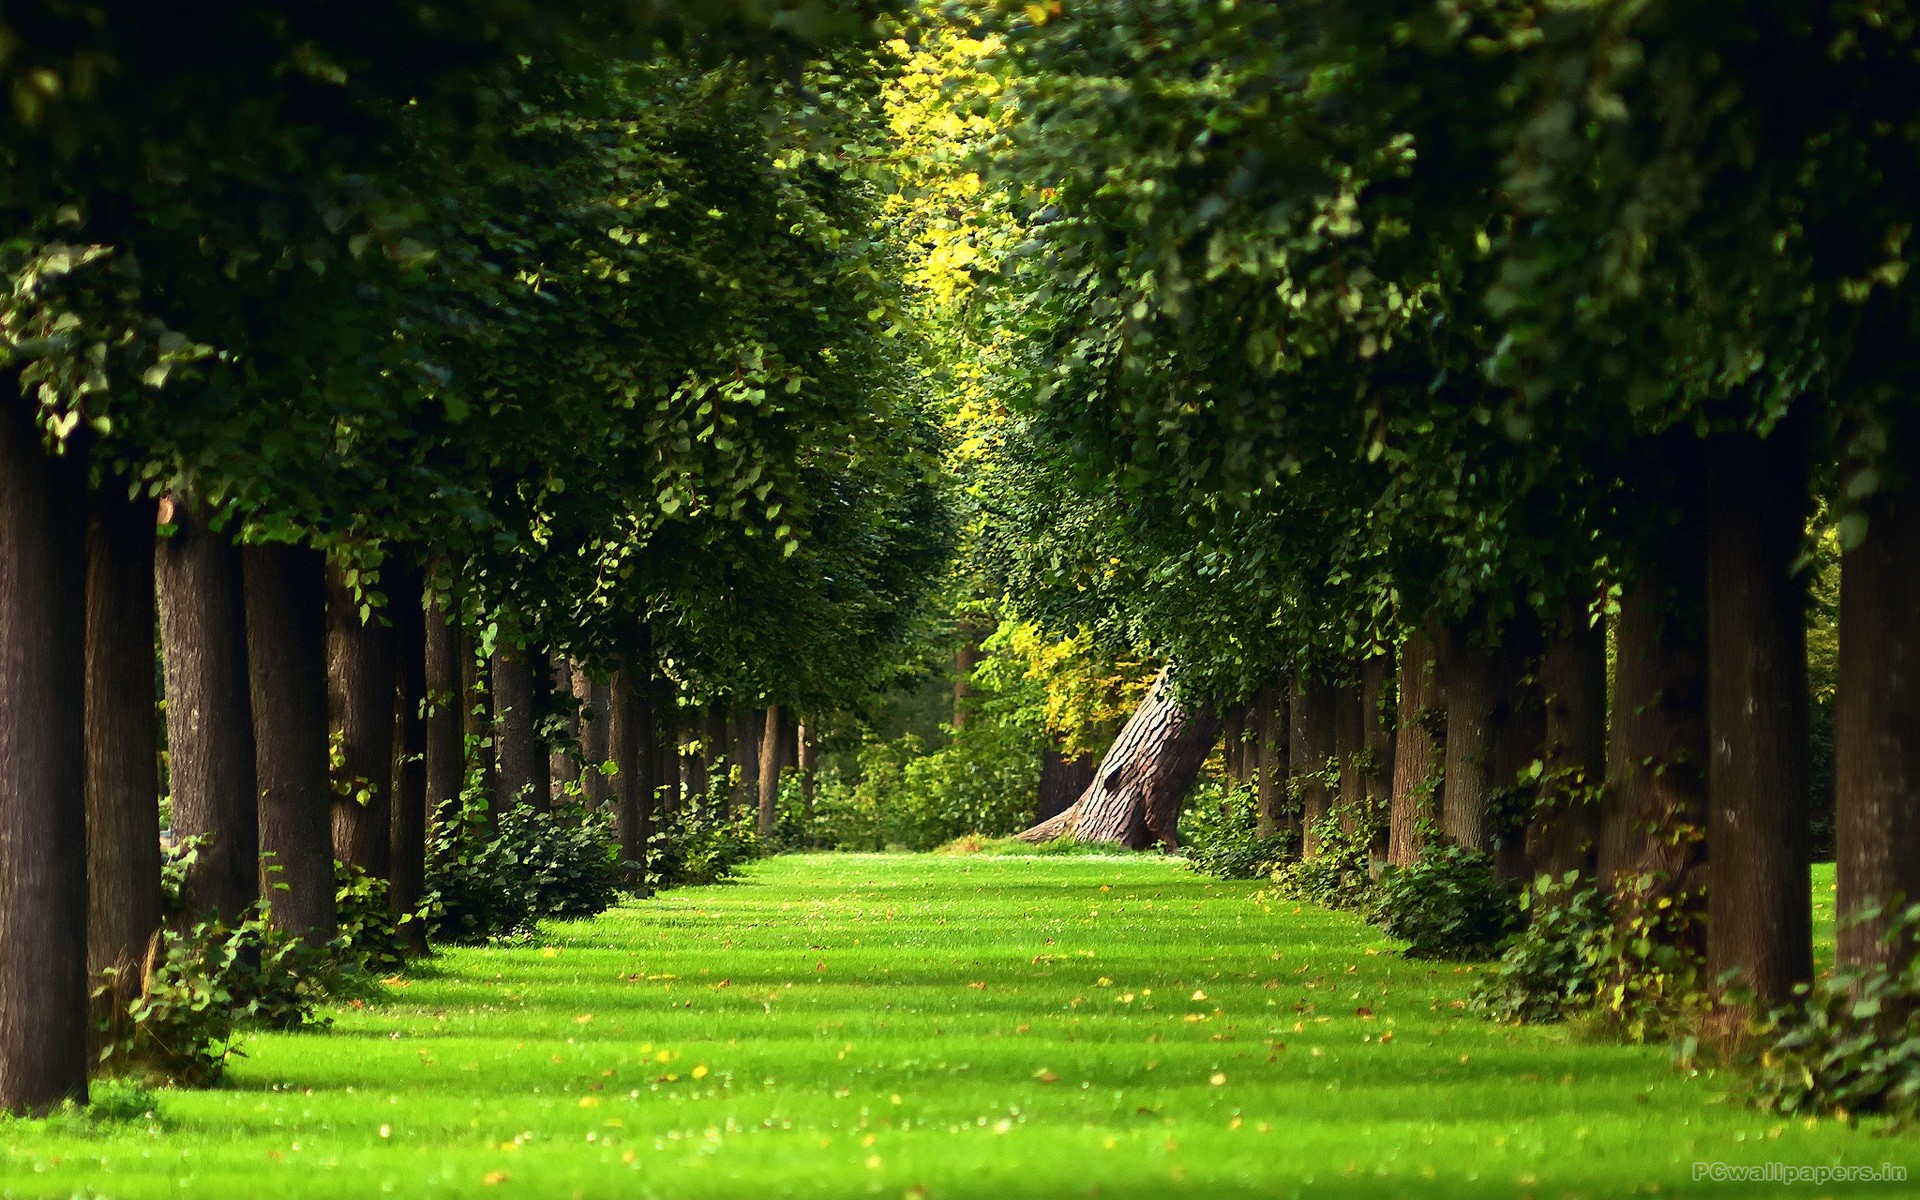 All Branched Out Tree Experts - green-trees-wallpaper_1920x1200